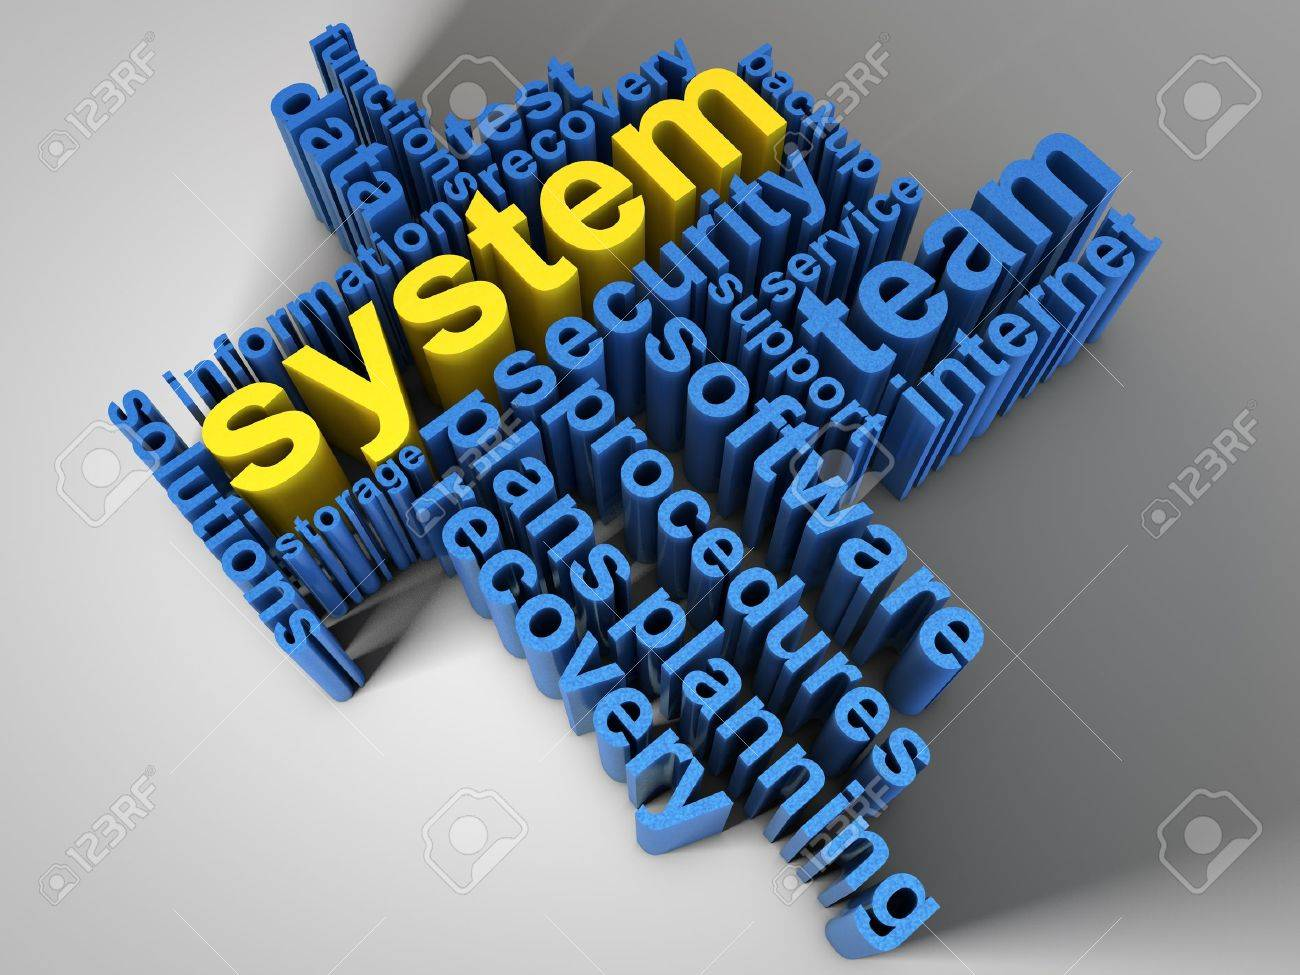 System, surrounded by relevant words Stock Photo - 13187071